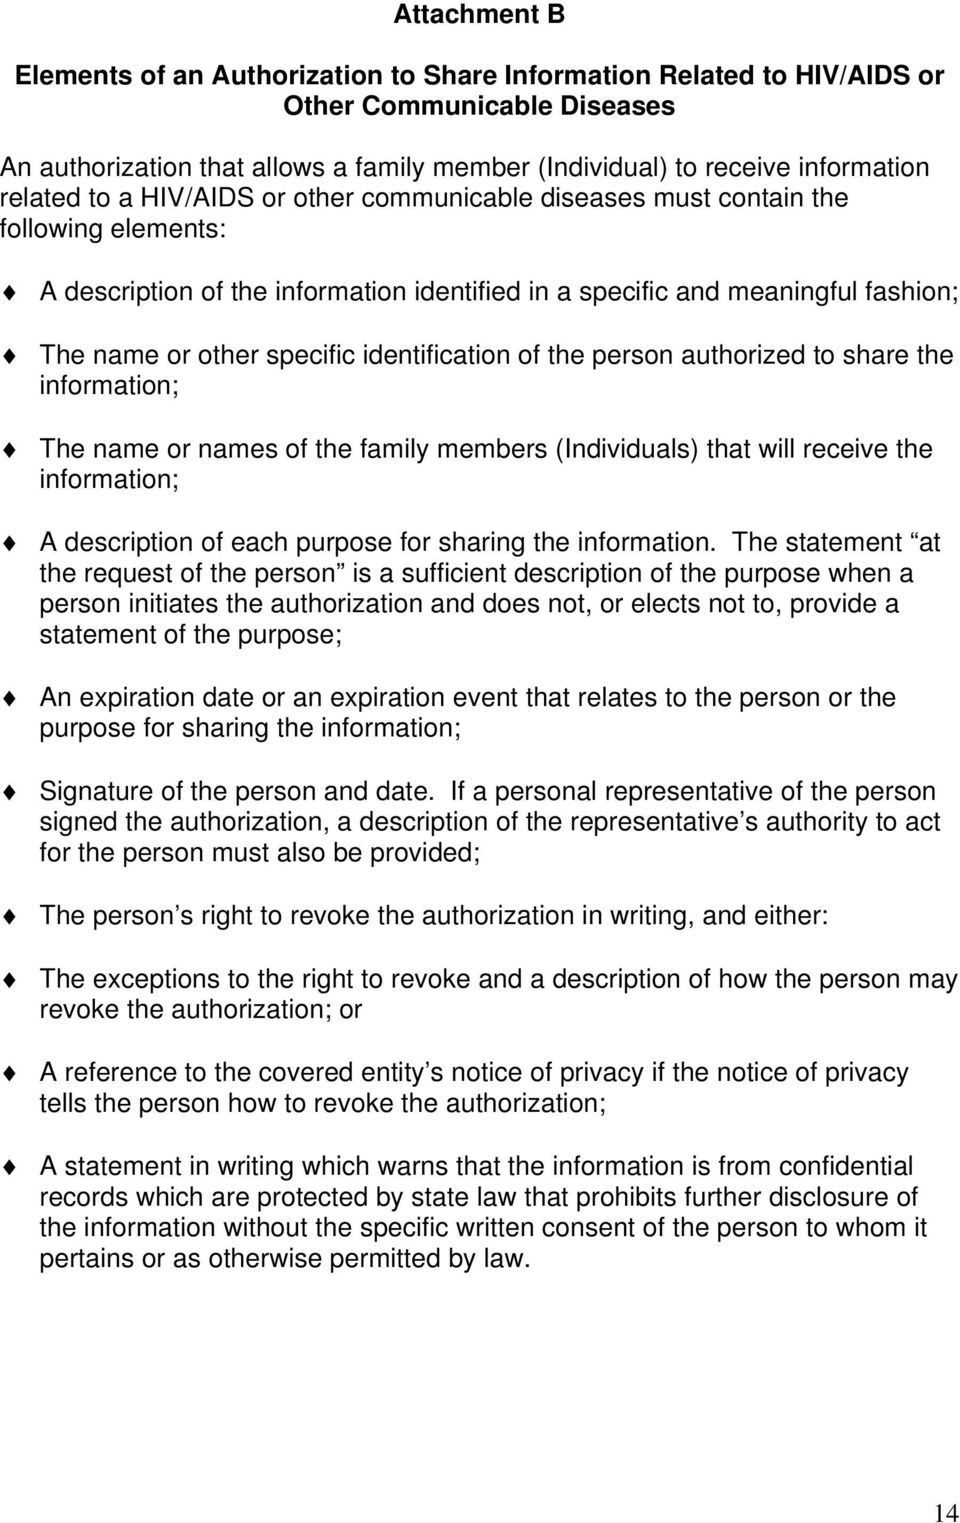 identification of the person authorized to share the information; The name or names of the family members (Individuals) that will receive the information; A description of each purpose for sharing